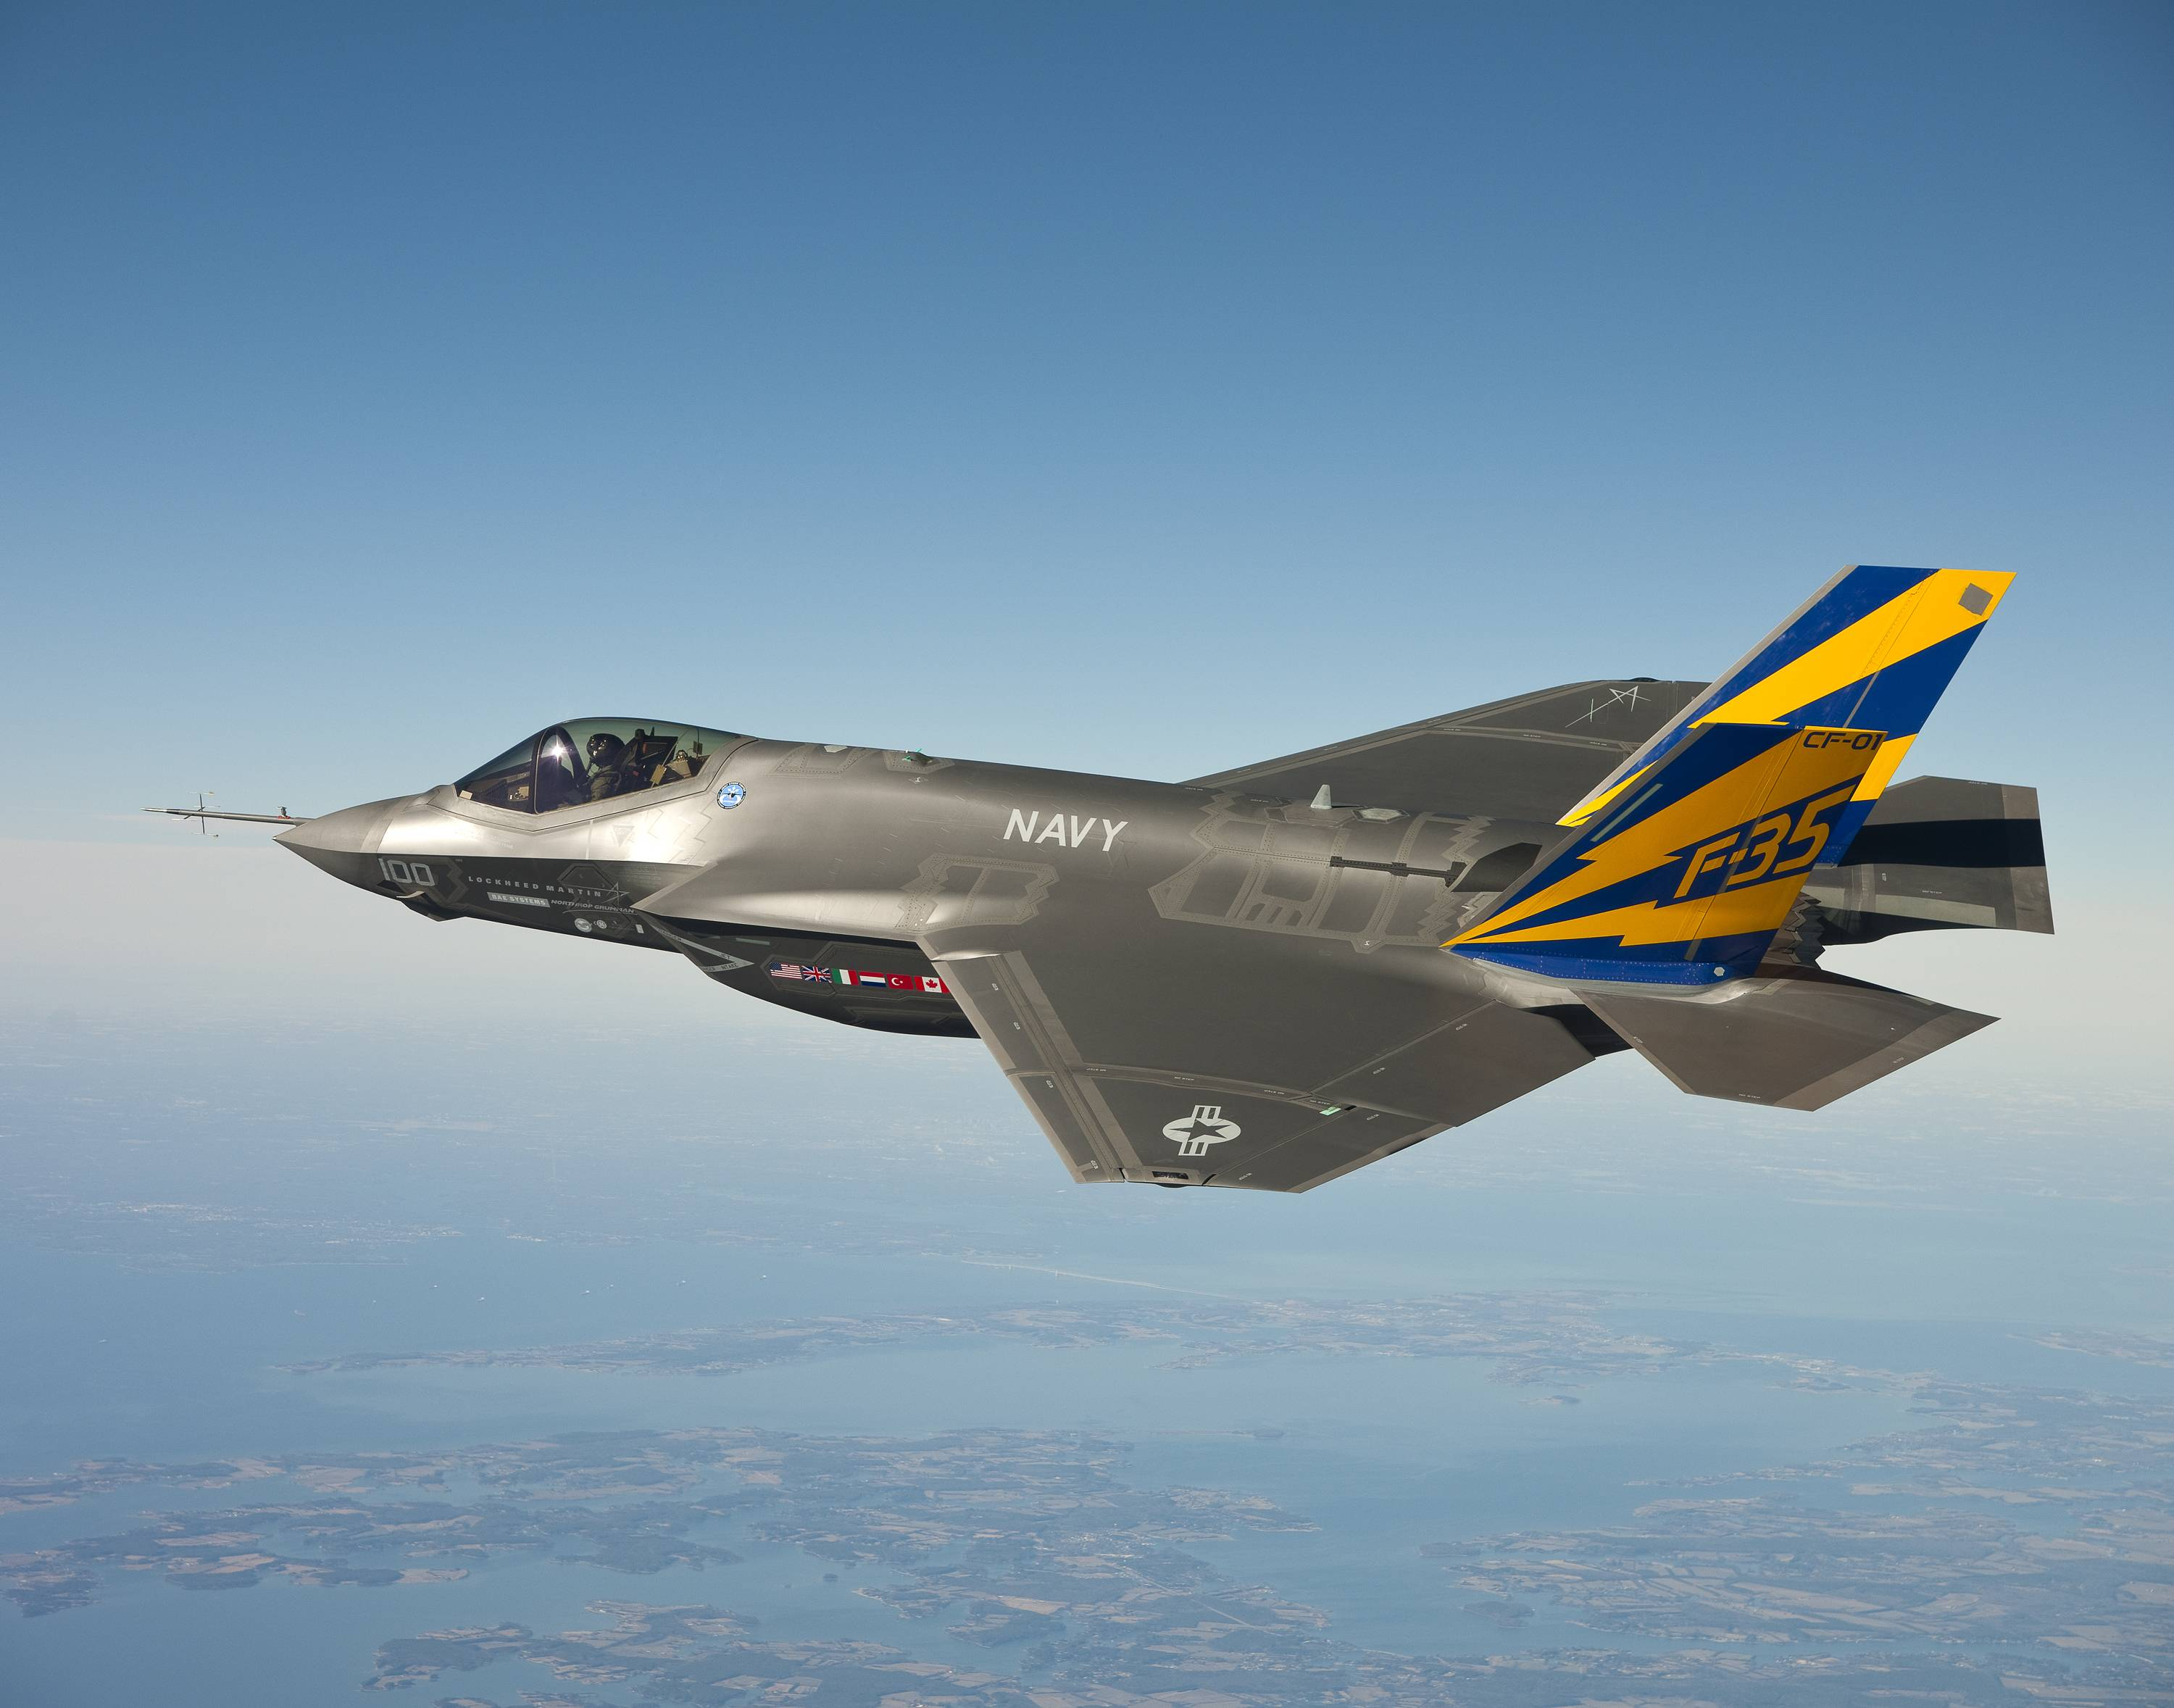 F-35 Fighter Jets To Get Mysterious New 'Cyberpod' Cyberweapon